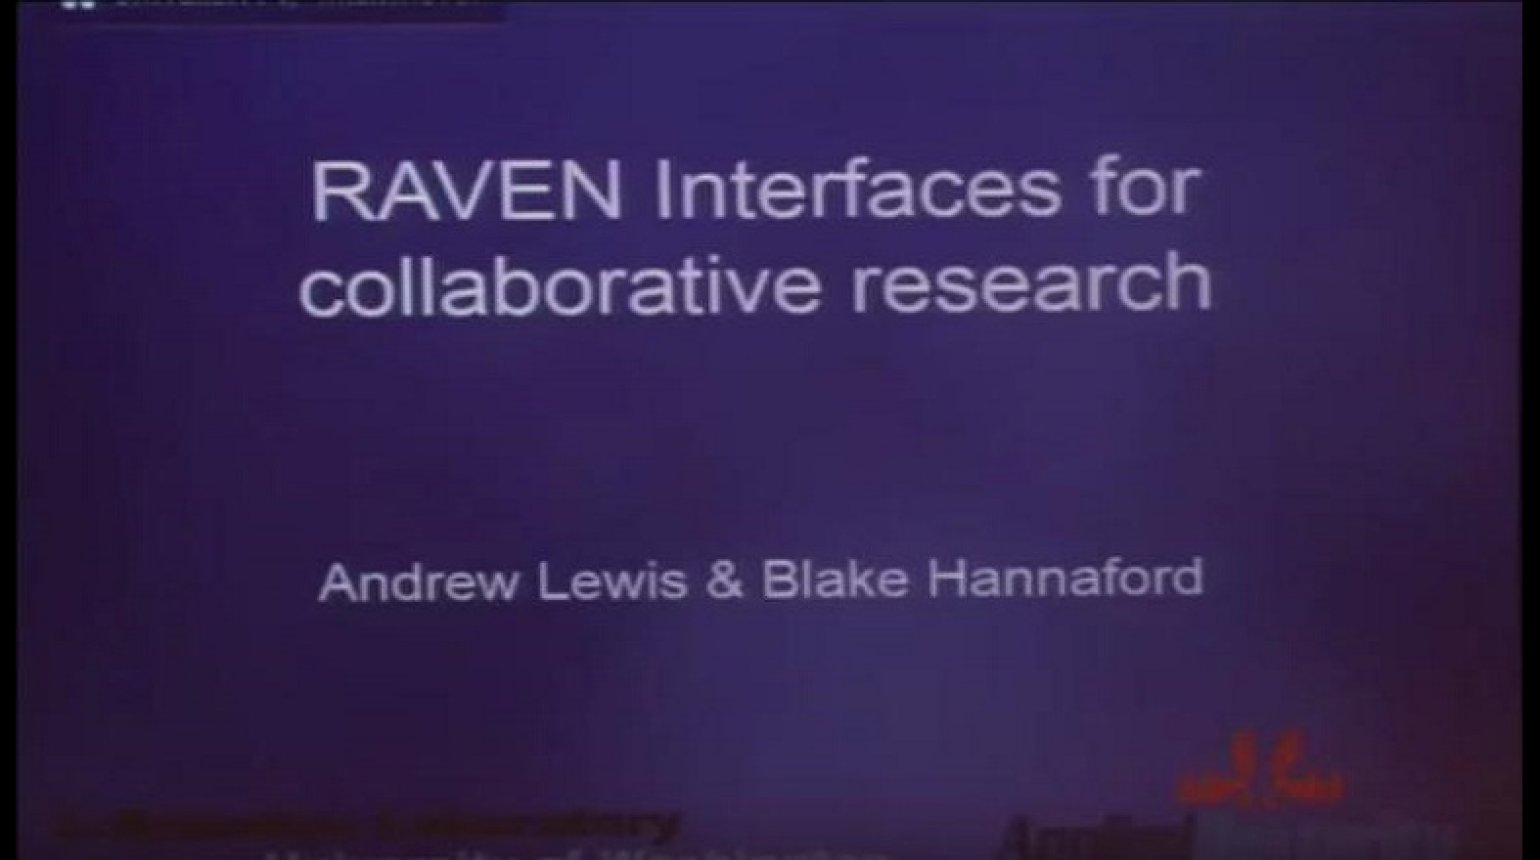 RAVEN Interfaces for collaborative research